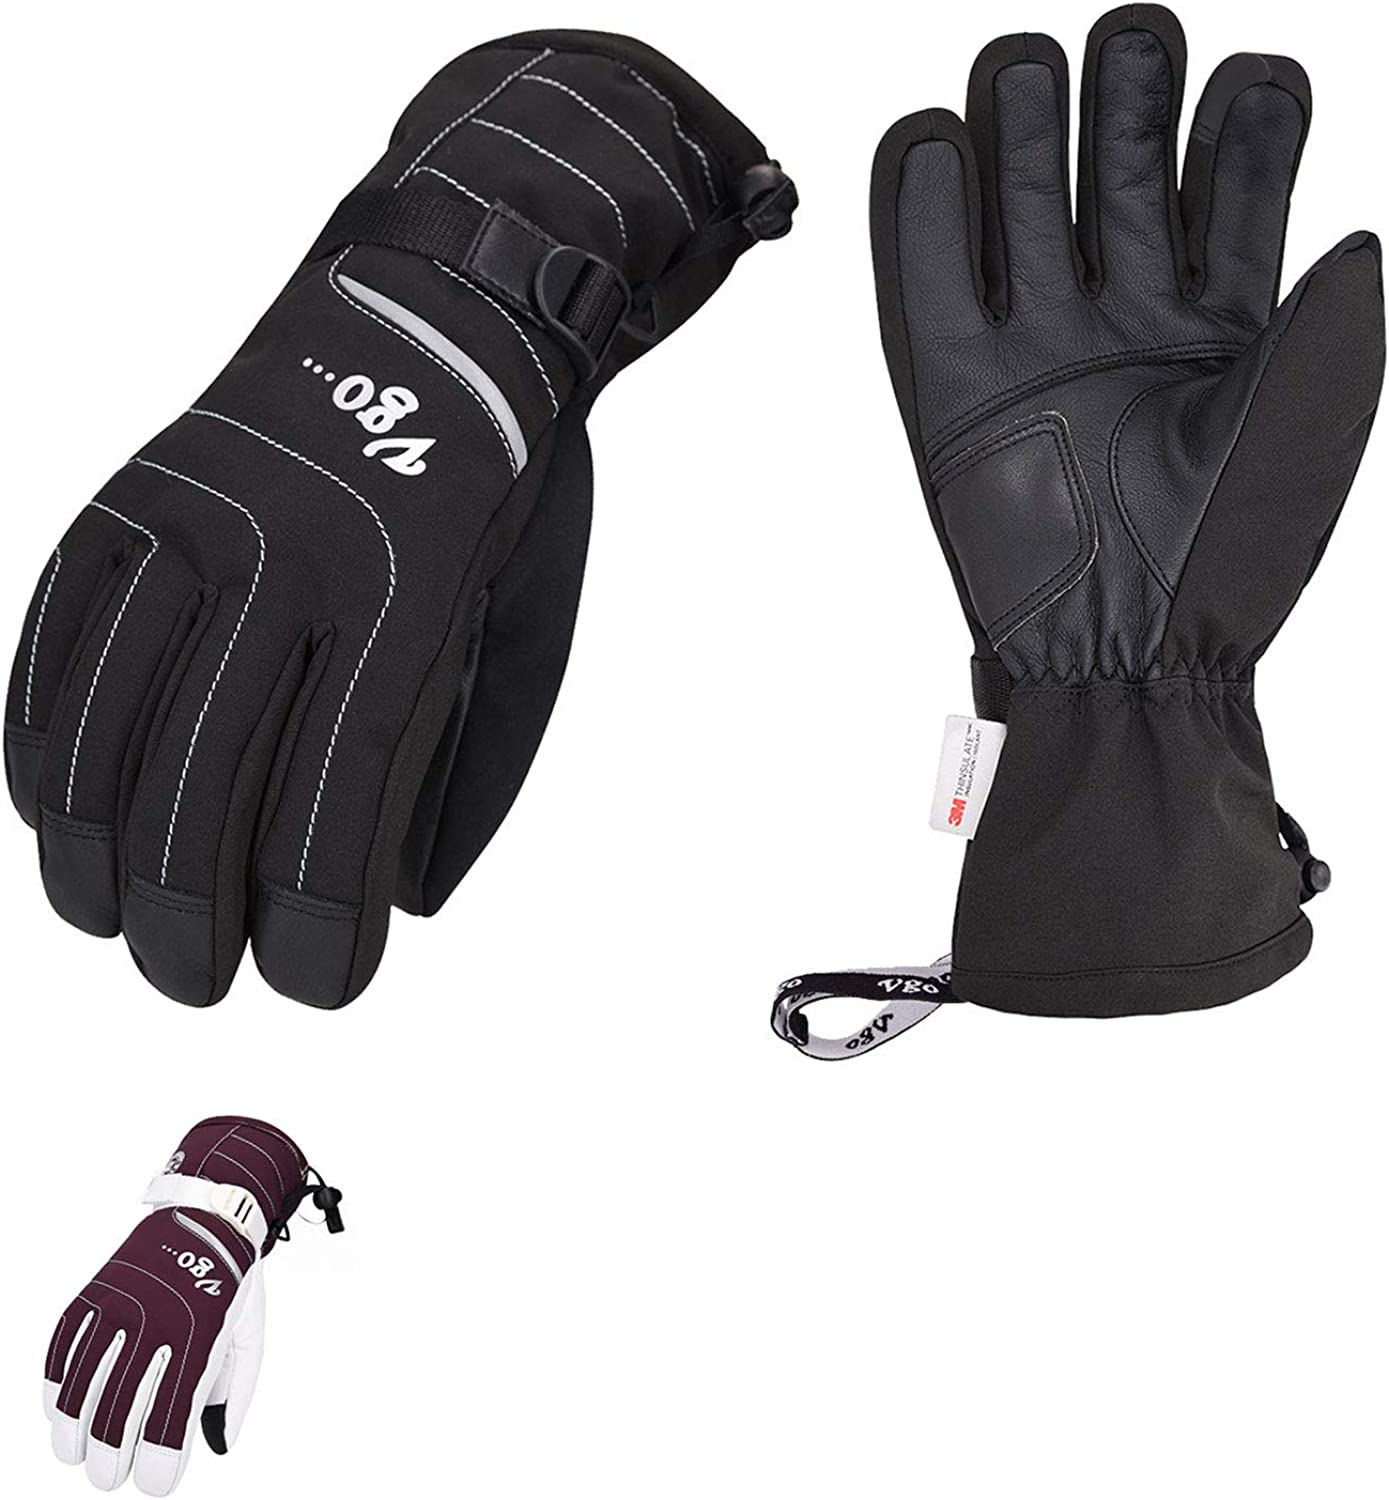 1 year warranty Vgo 2-Pairs Leather Complete Free Shipping Winter Warm Ladies SF-GA2 Skiing Gloves for